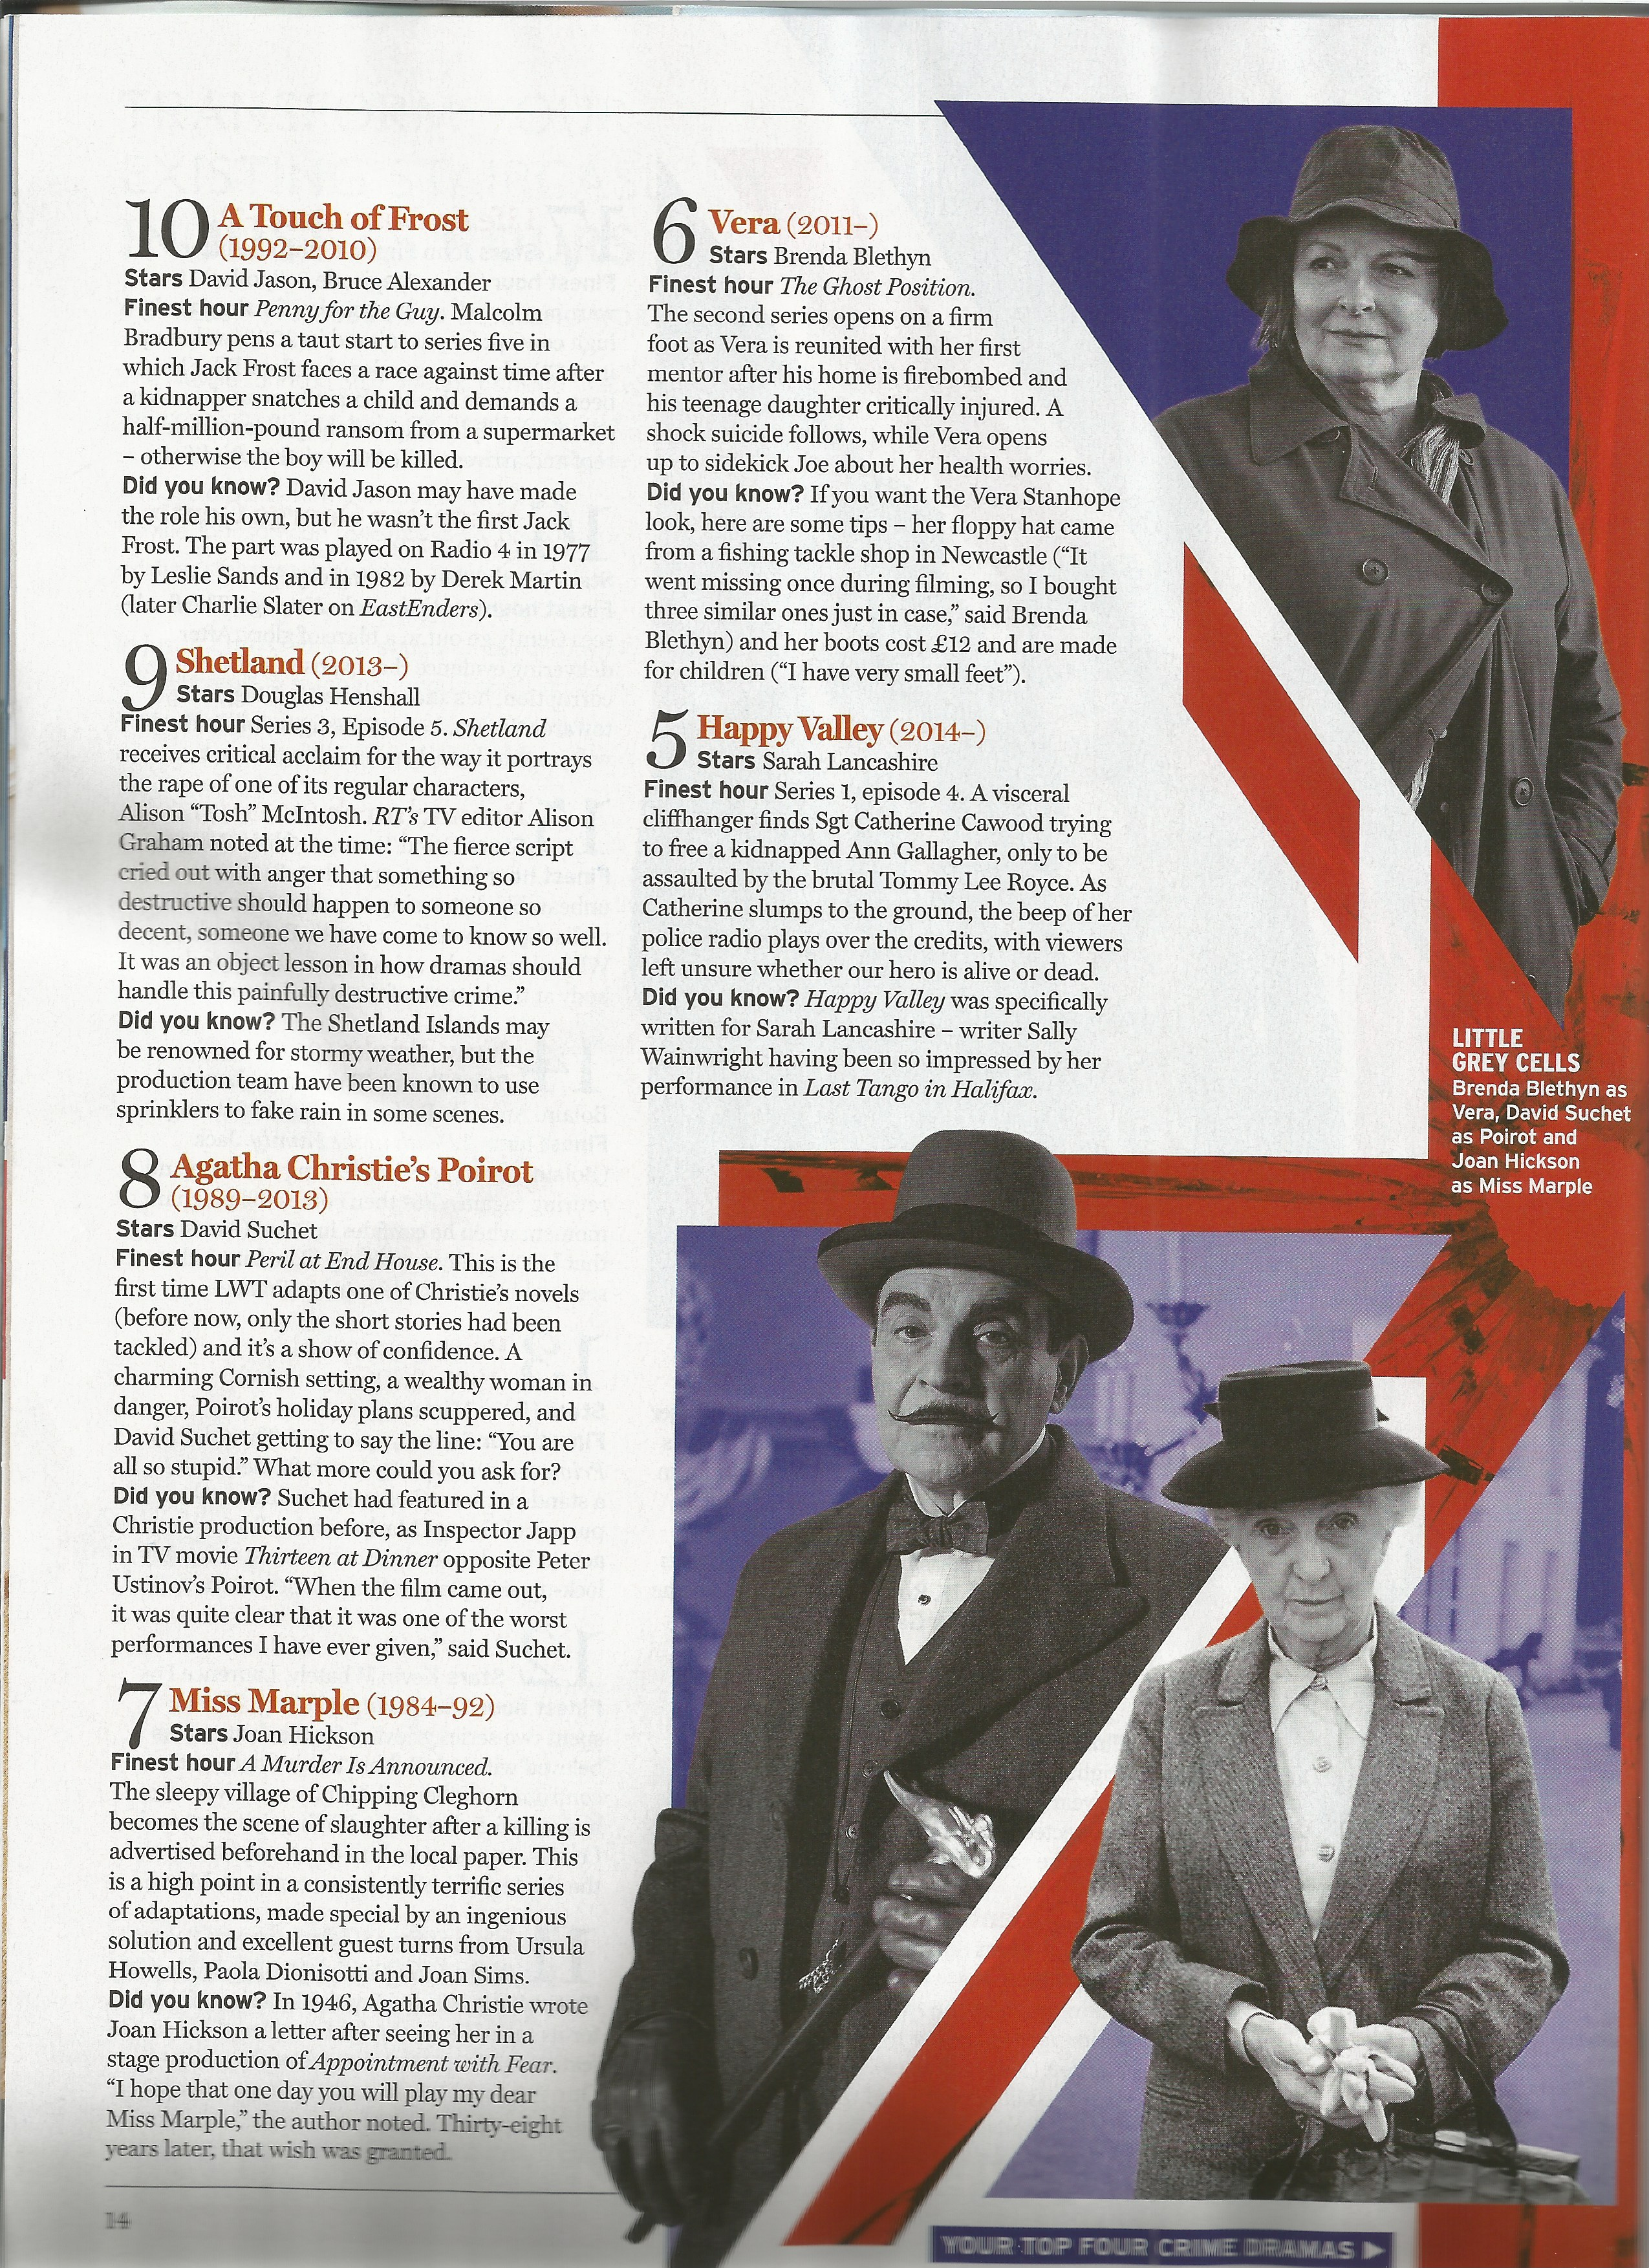 READ Radio Times Article on 50 Greatest British Crime Dramas  July